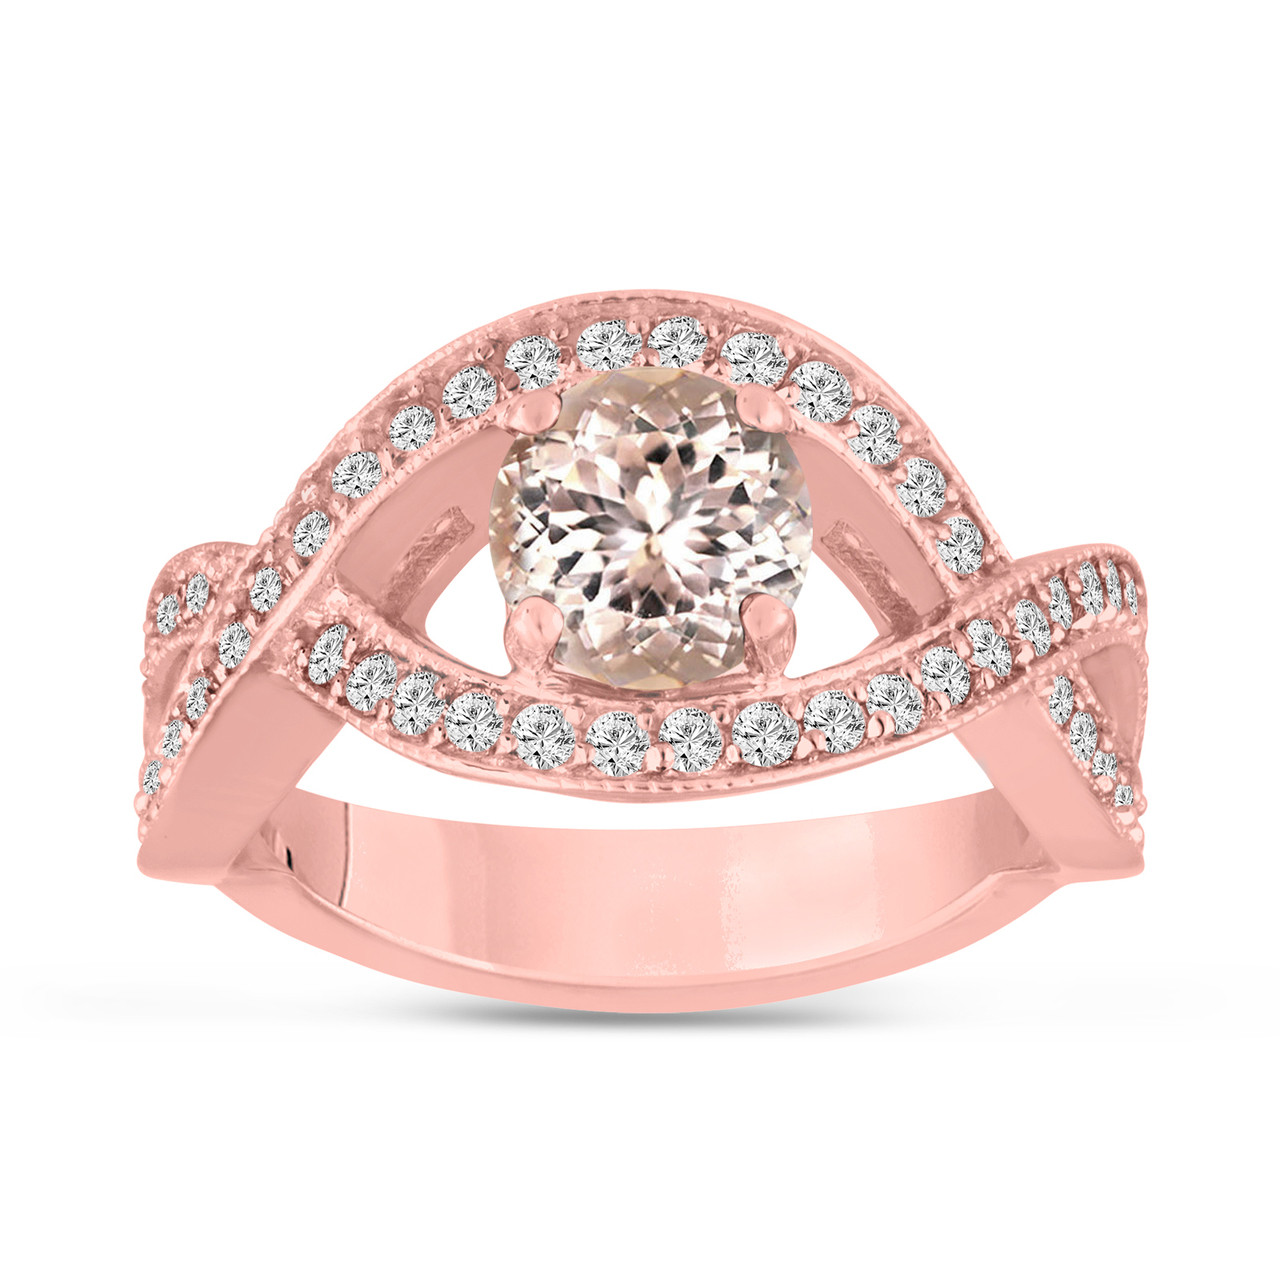 Morganite Engagement Ring Rose Gold, Pink Peach Morganite Bridal ...